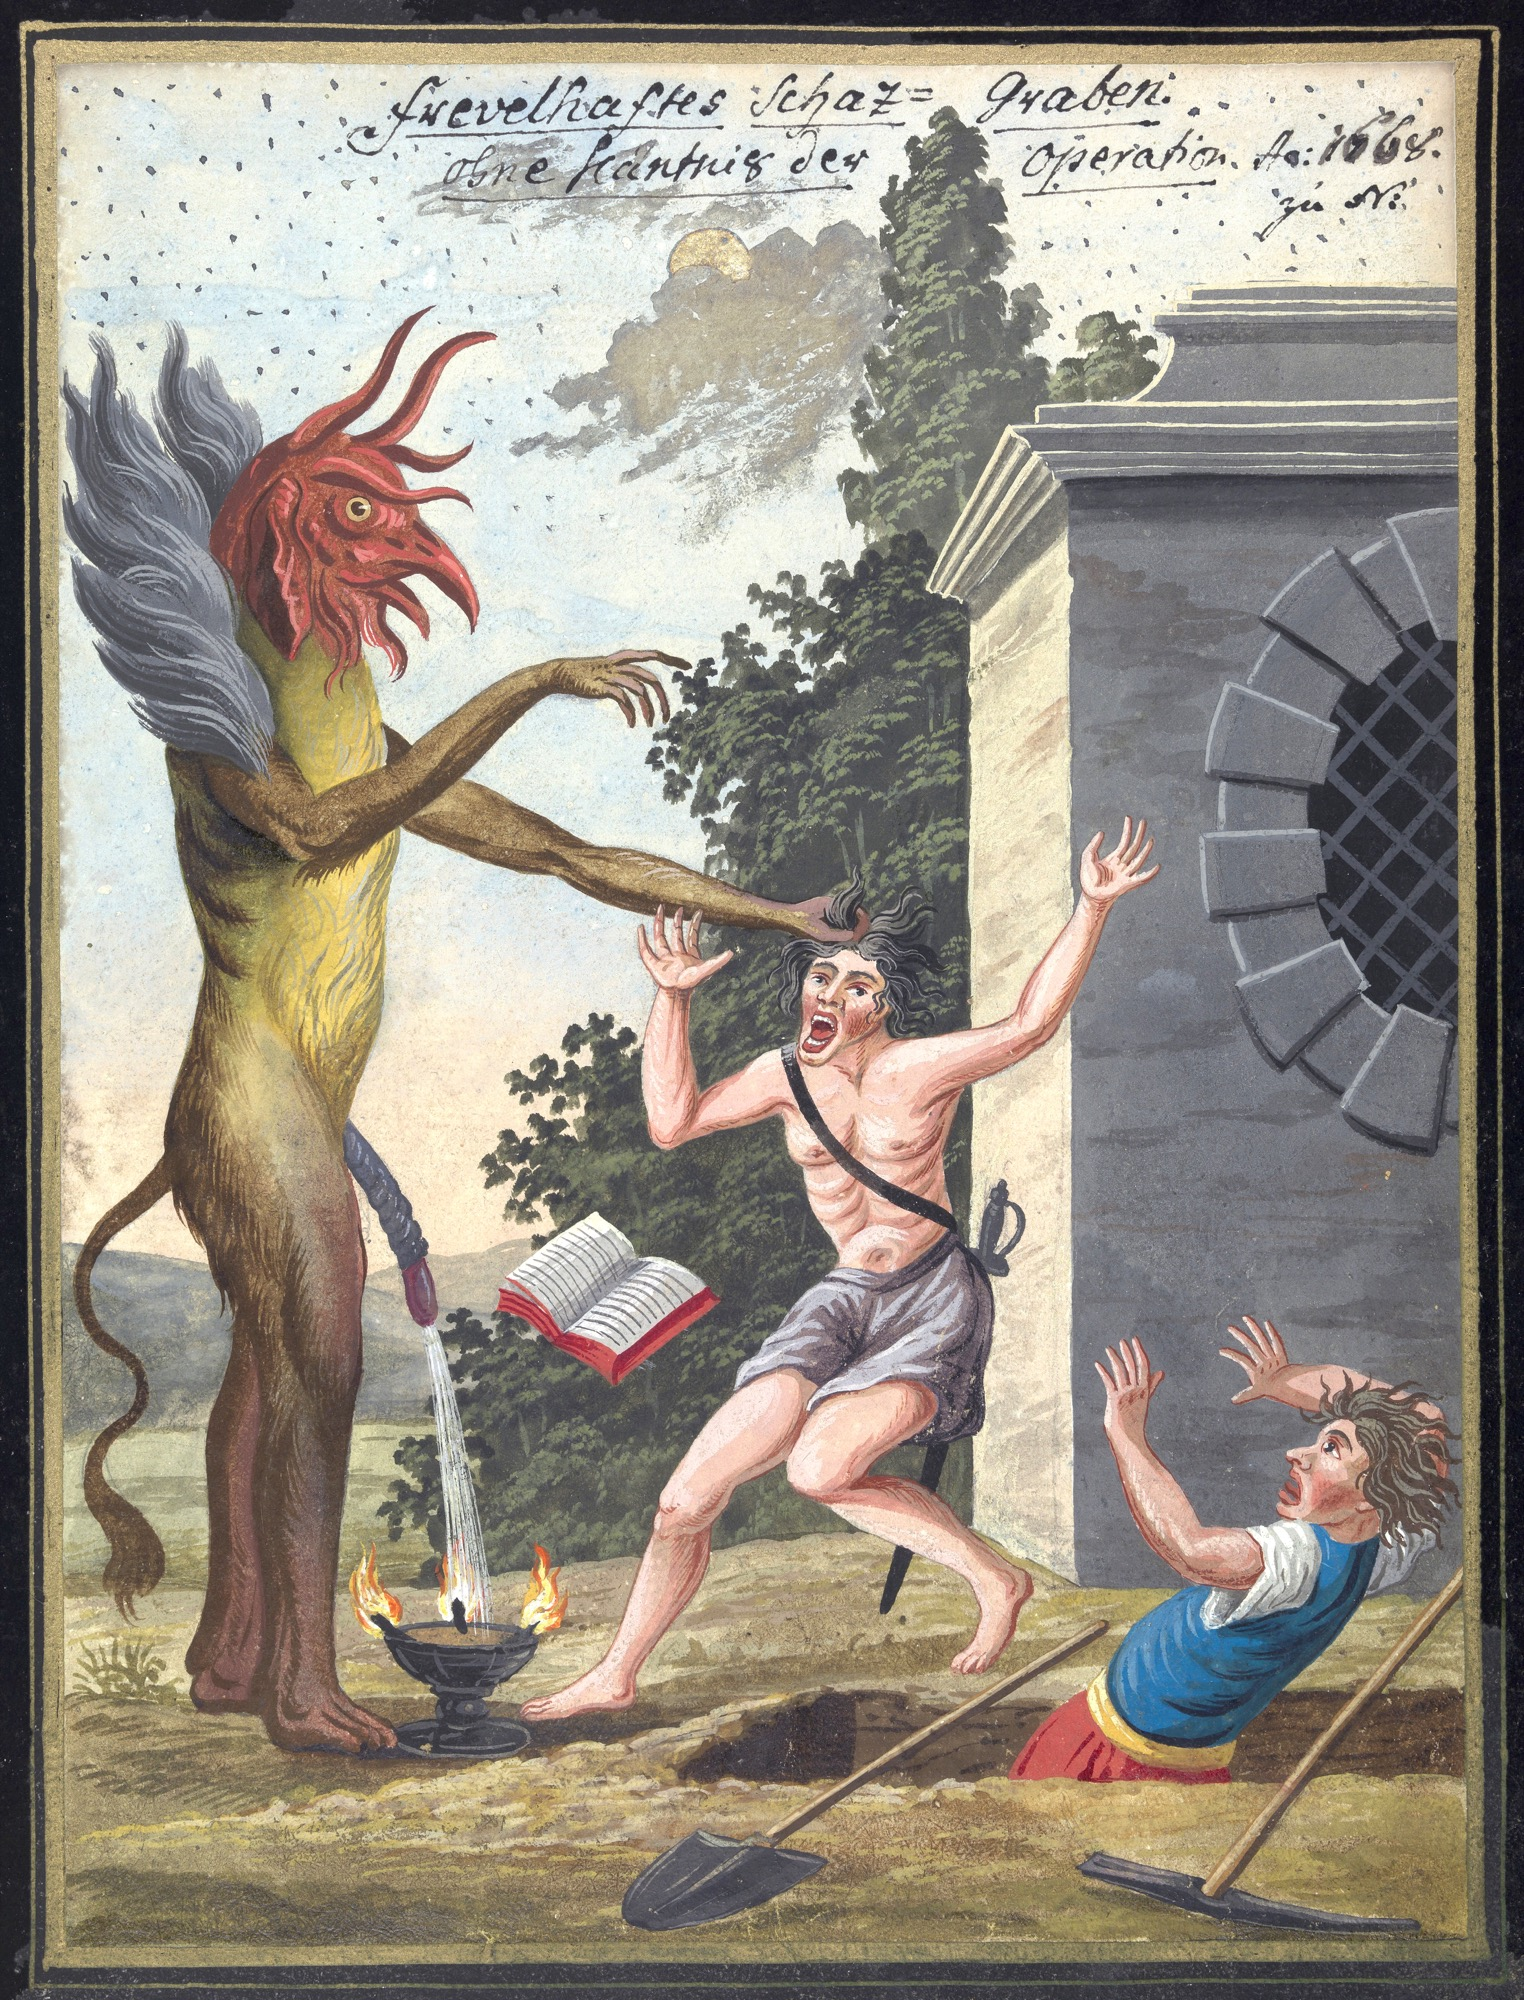 L0076363 A compendium about demons and magic. MS 1766. Credit: Wellcome Library, London. Wellcome Images images@wellcome.ac.uk http://wellcomeimages.org Compendium rarissimum totius Artis Magicae sistematisatae per celeberrimos Artis hujus Magistros. Anno 1057. Noli me tangere. Watercolour c. 1775 Published:  -  Copyrighted work available under Creative Commons Attribution only licence CC BY 4.0 http://creativecommons.org/licenses/by/4.0/